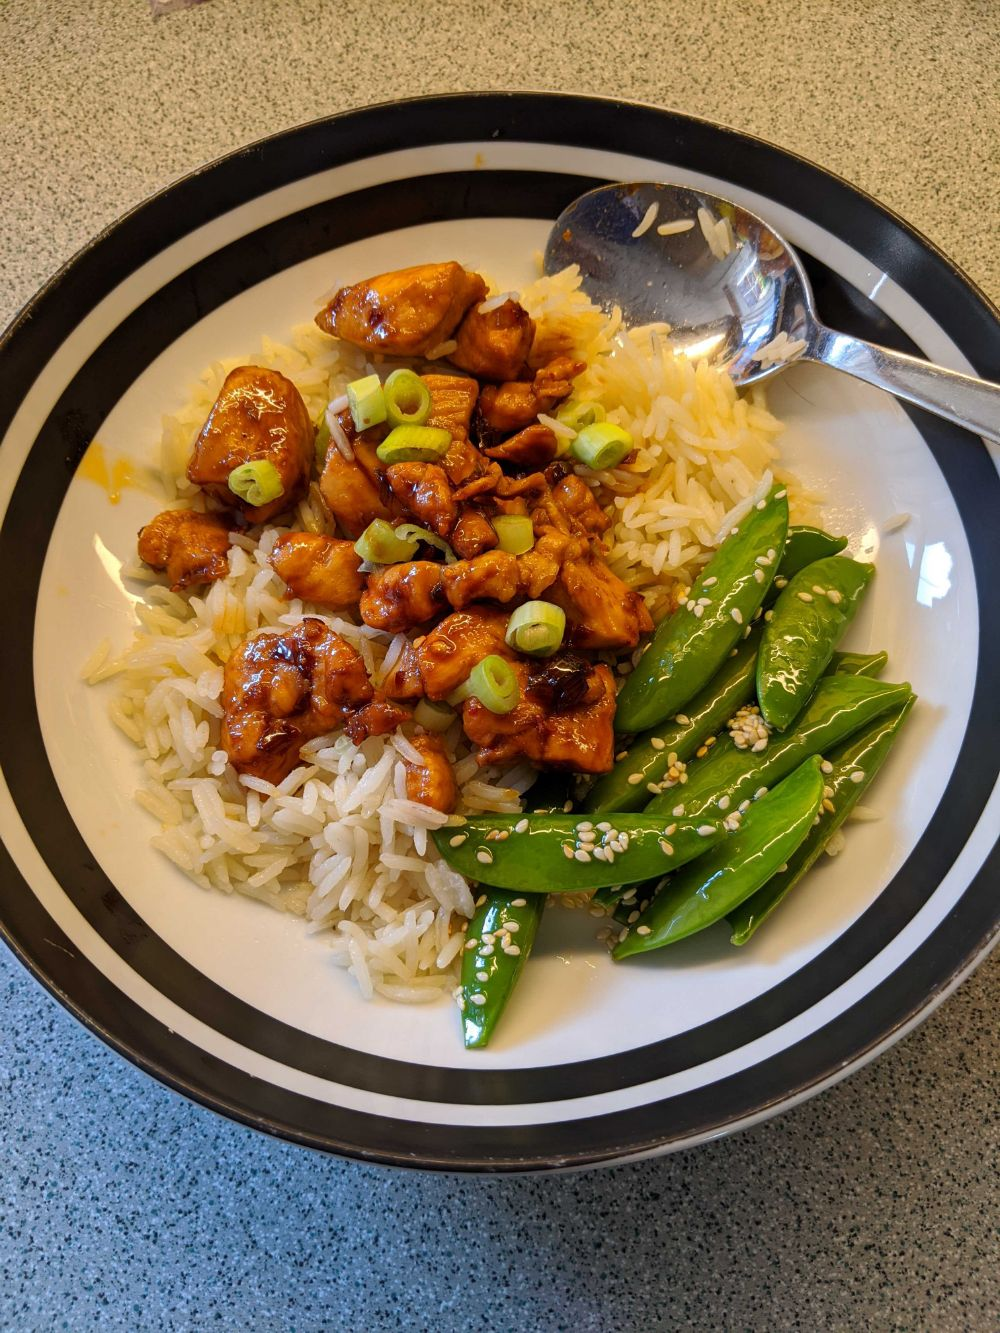 Chicken teriyaki with rice, spring onions, and sesame sugar snap peas, the chicken looking very sticky